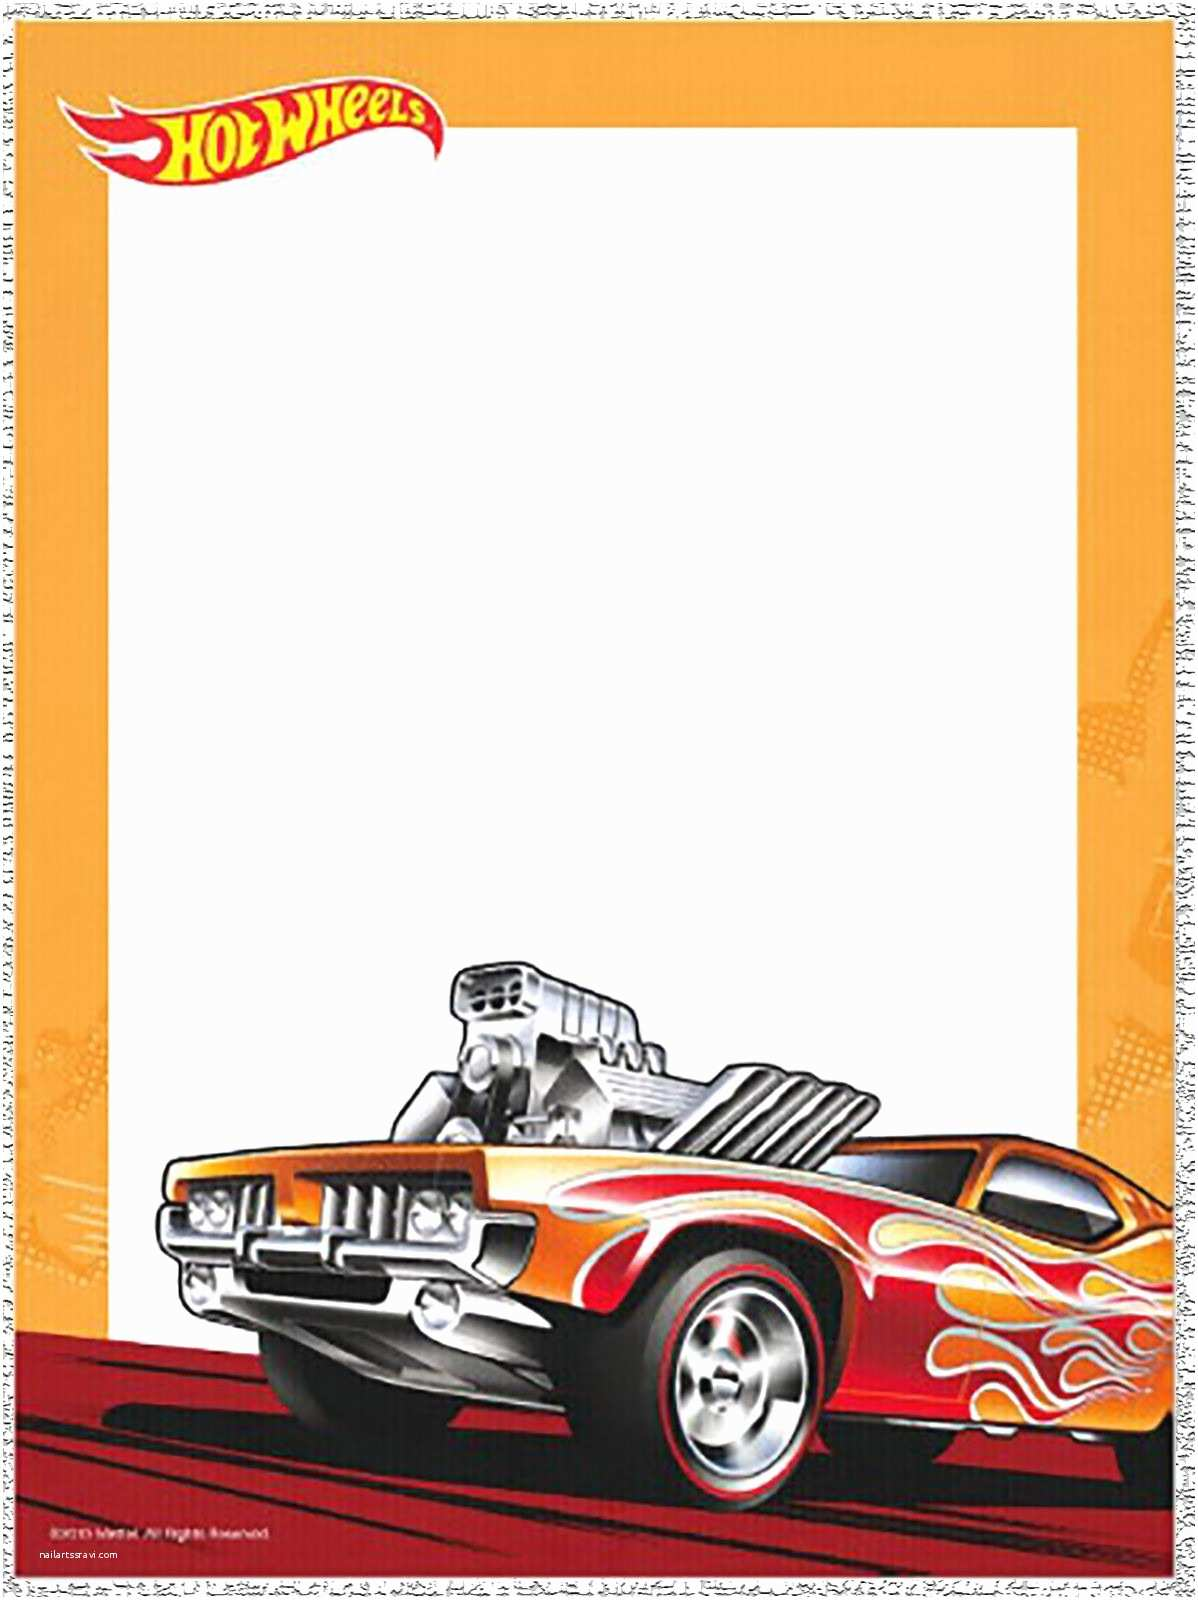 Hot Wheels Party Invitations Free Printable Hot Wheels Invitation Templates for Download